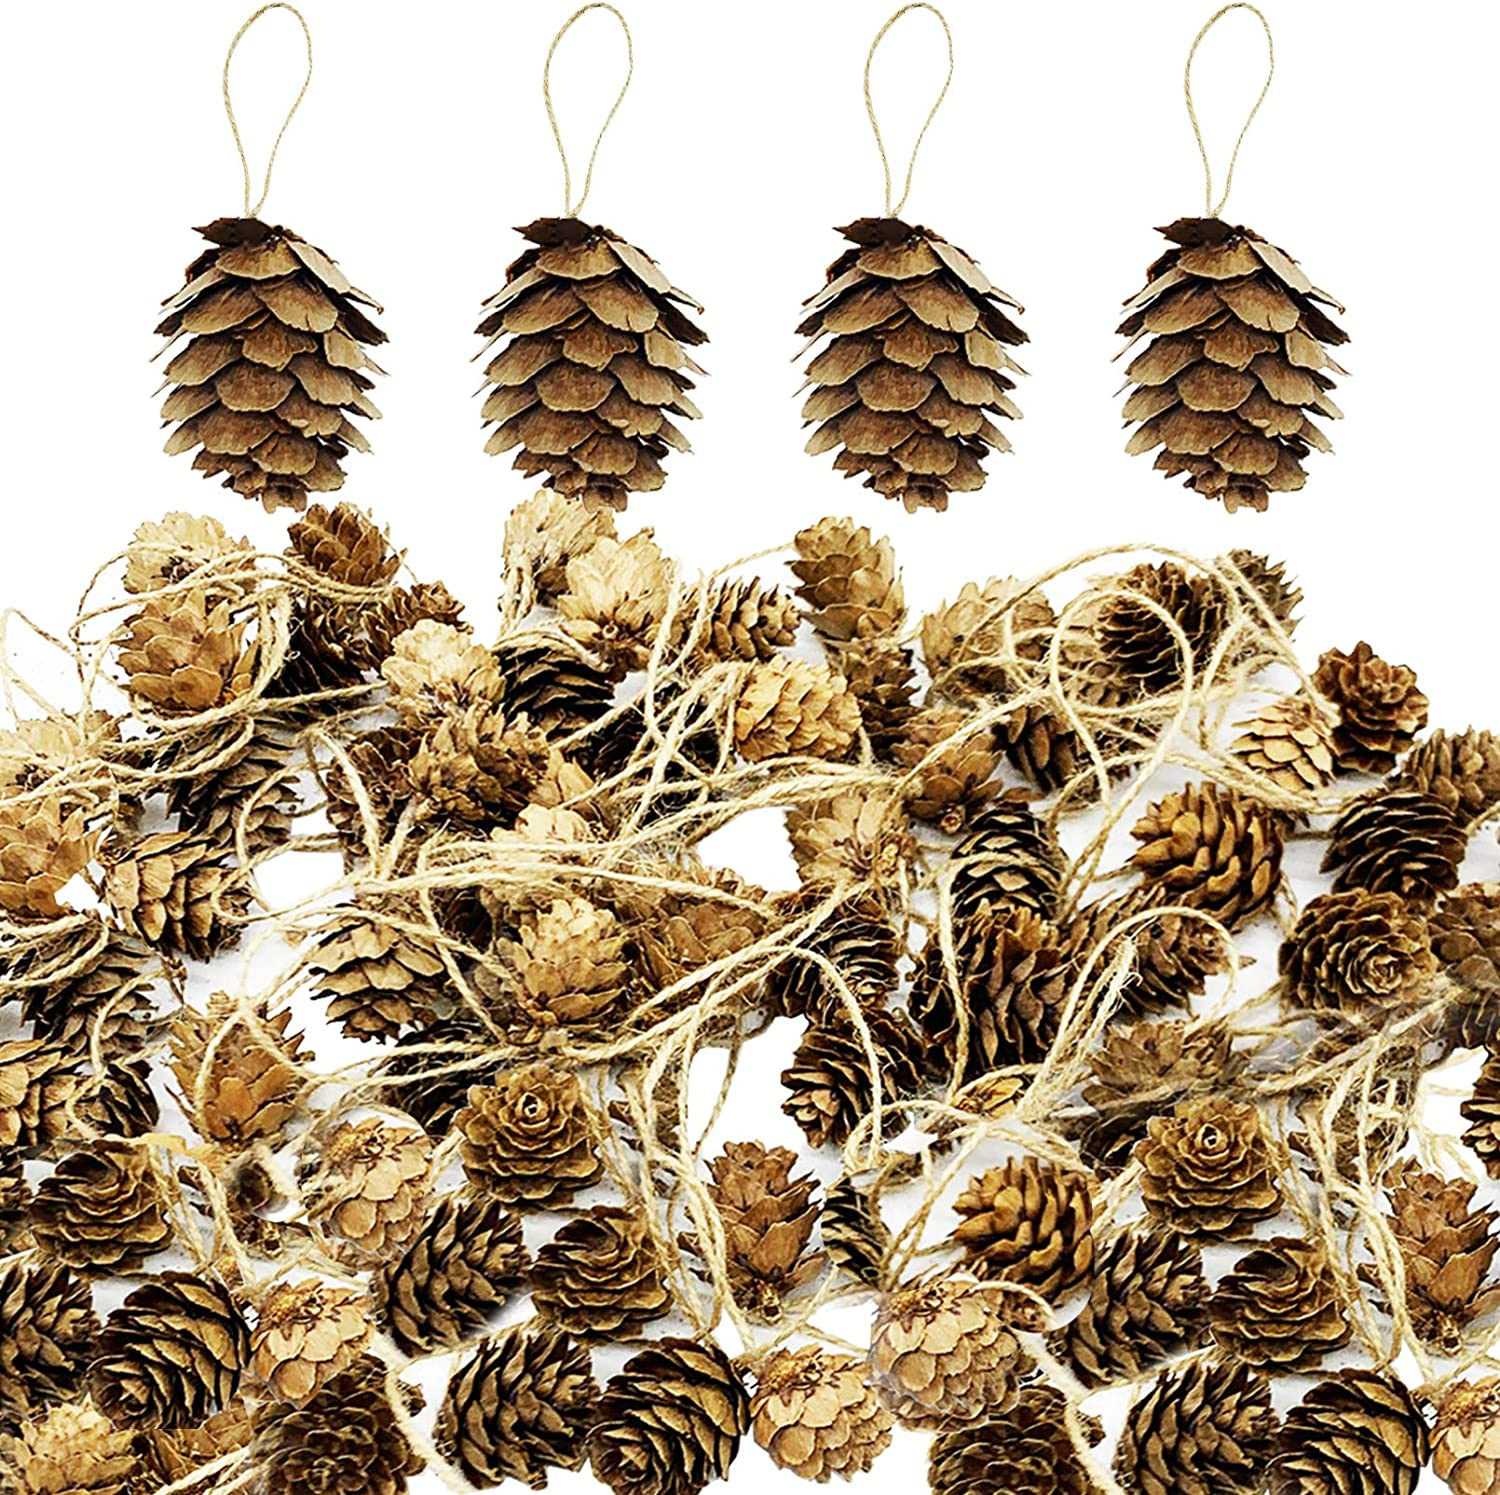 Delokey Thanksgiving Natural Mini Hanging Pine Cones with String-Christmas Tree Hanging Pinecone Ornaments for DIY Crafts, Home Decorations,Fall and Thanksgiving,Wedding Decor (80pcs)